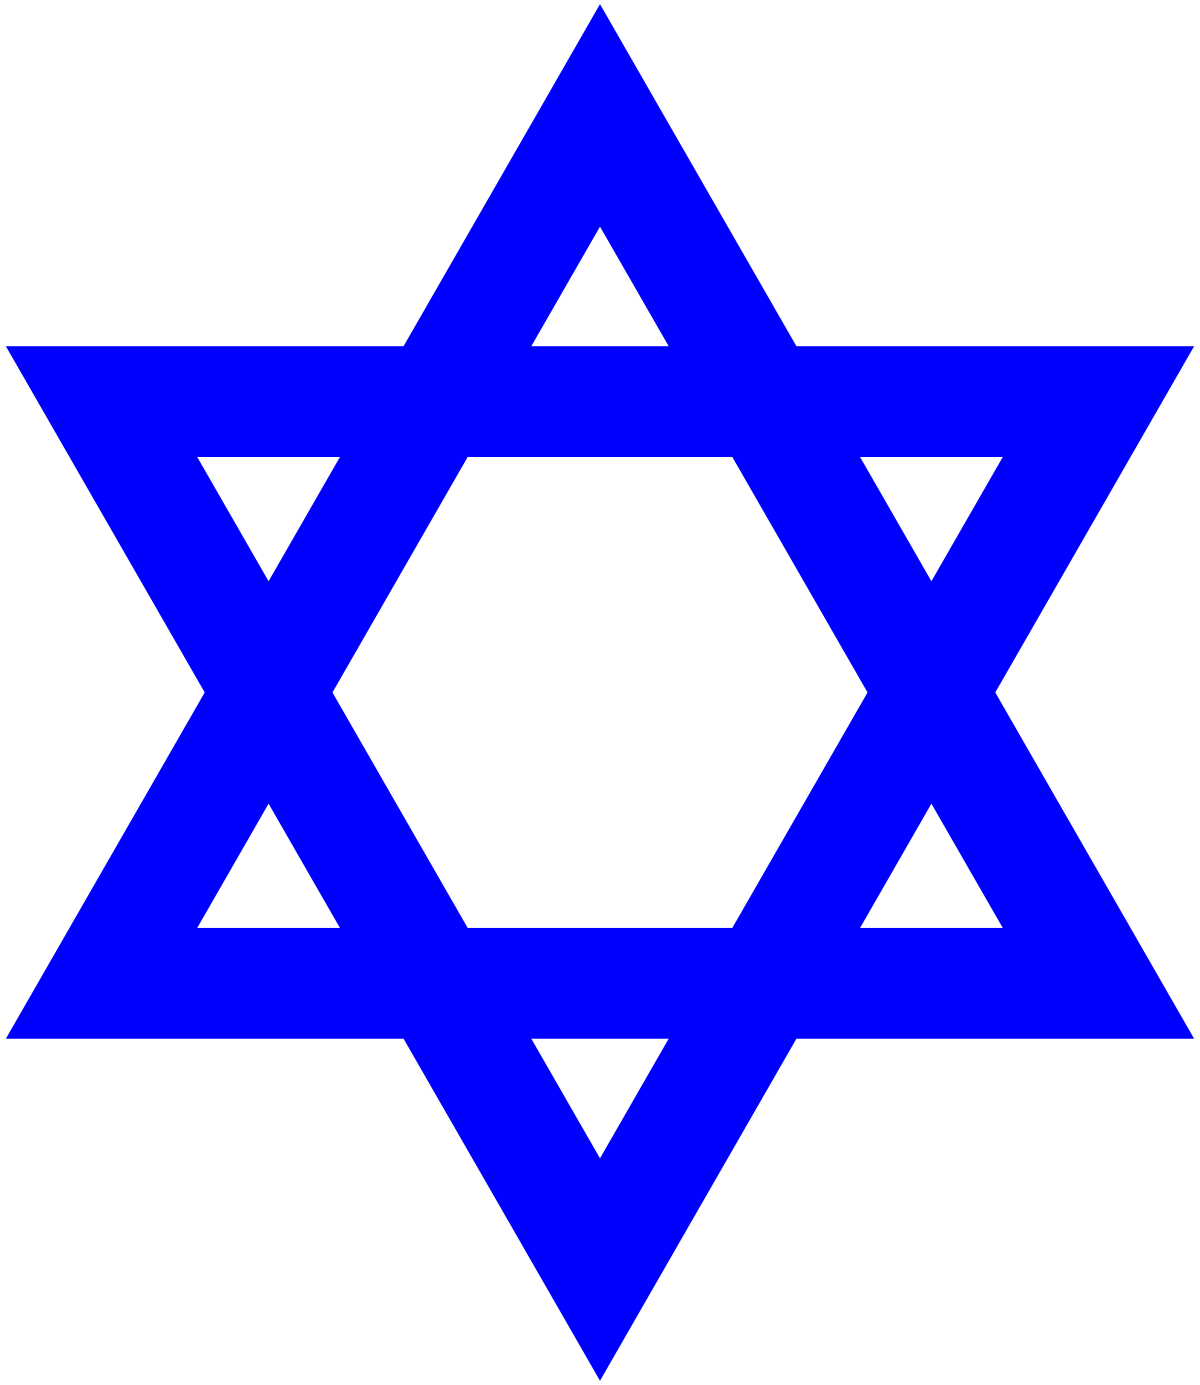 Star Of David No Background - Star of David - Wikipedia